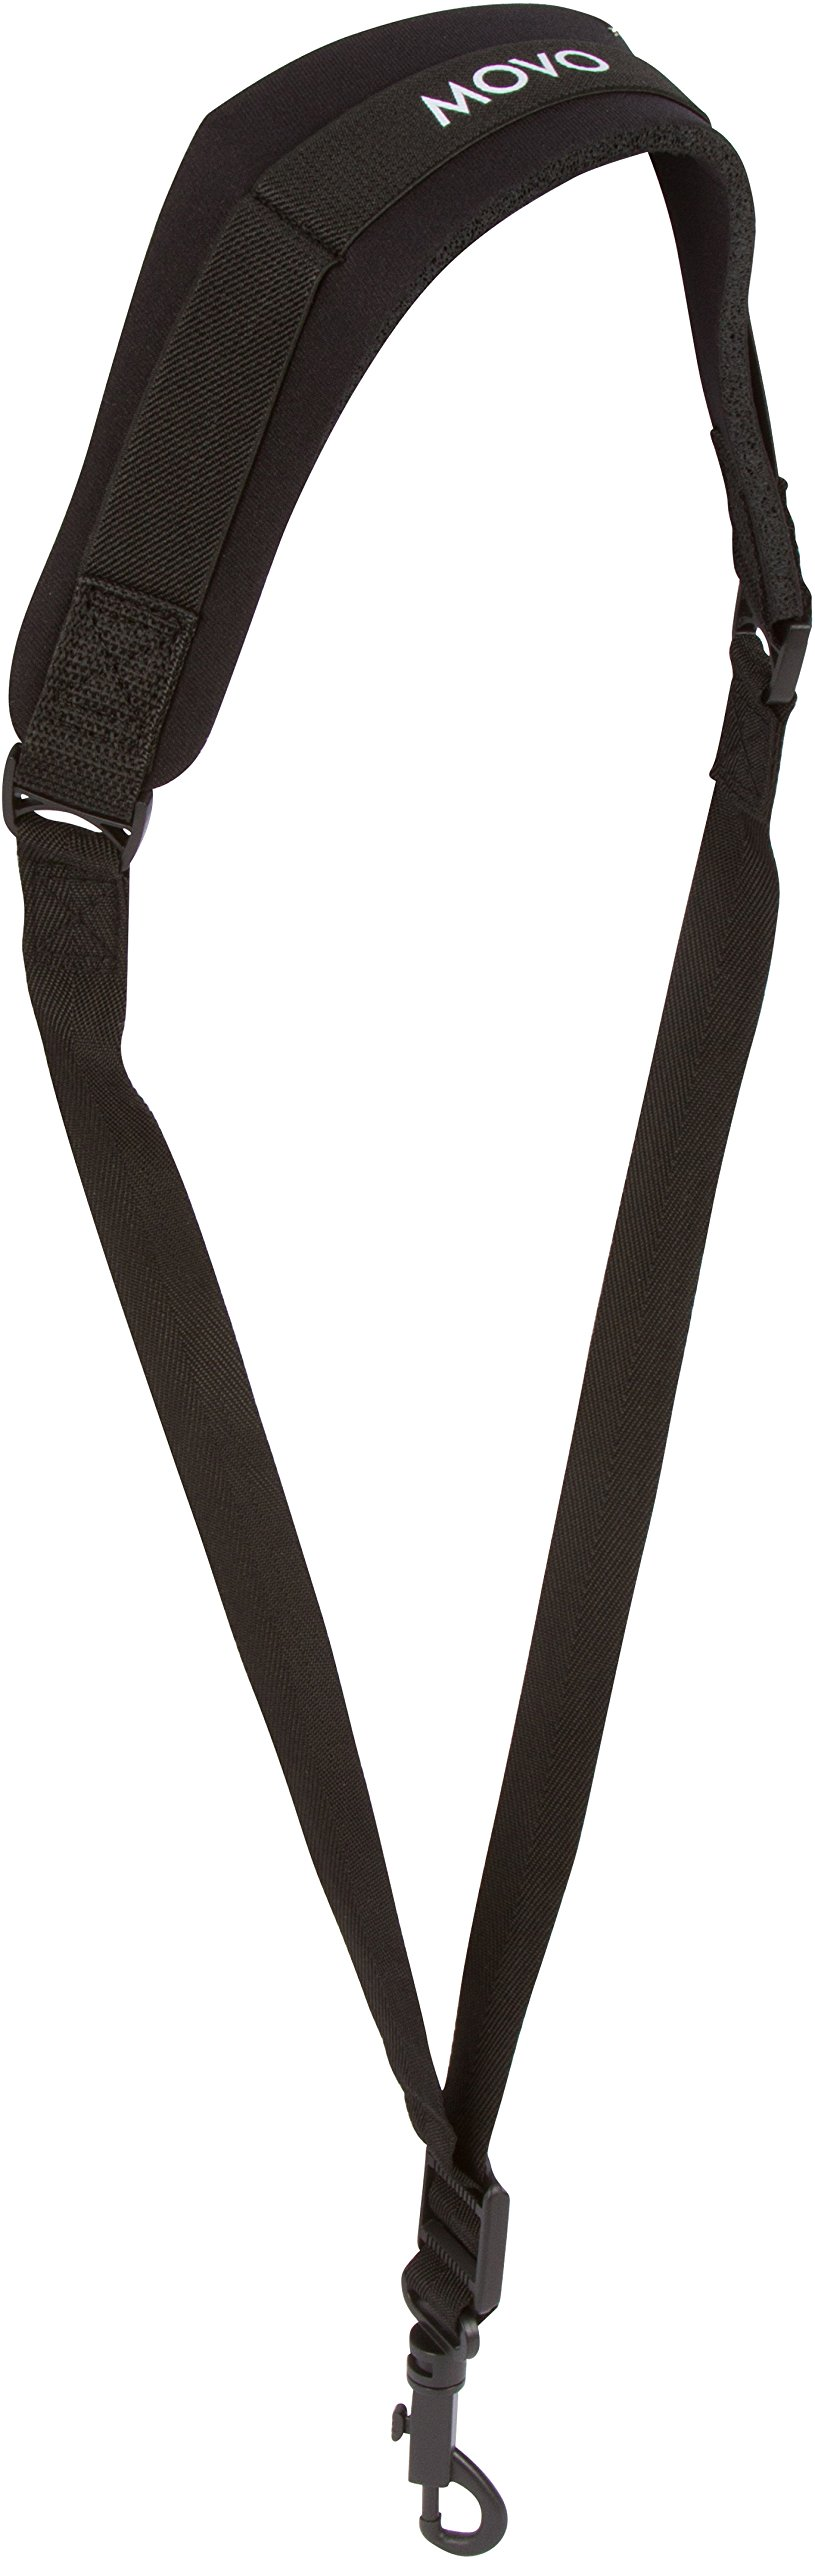 Movo MS-20L Neoprene Instrument Neck Strap for Saxophones, Horns, Bass Clarinets, Basoons, Oboes and More (Black - Long Length)